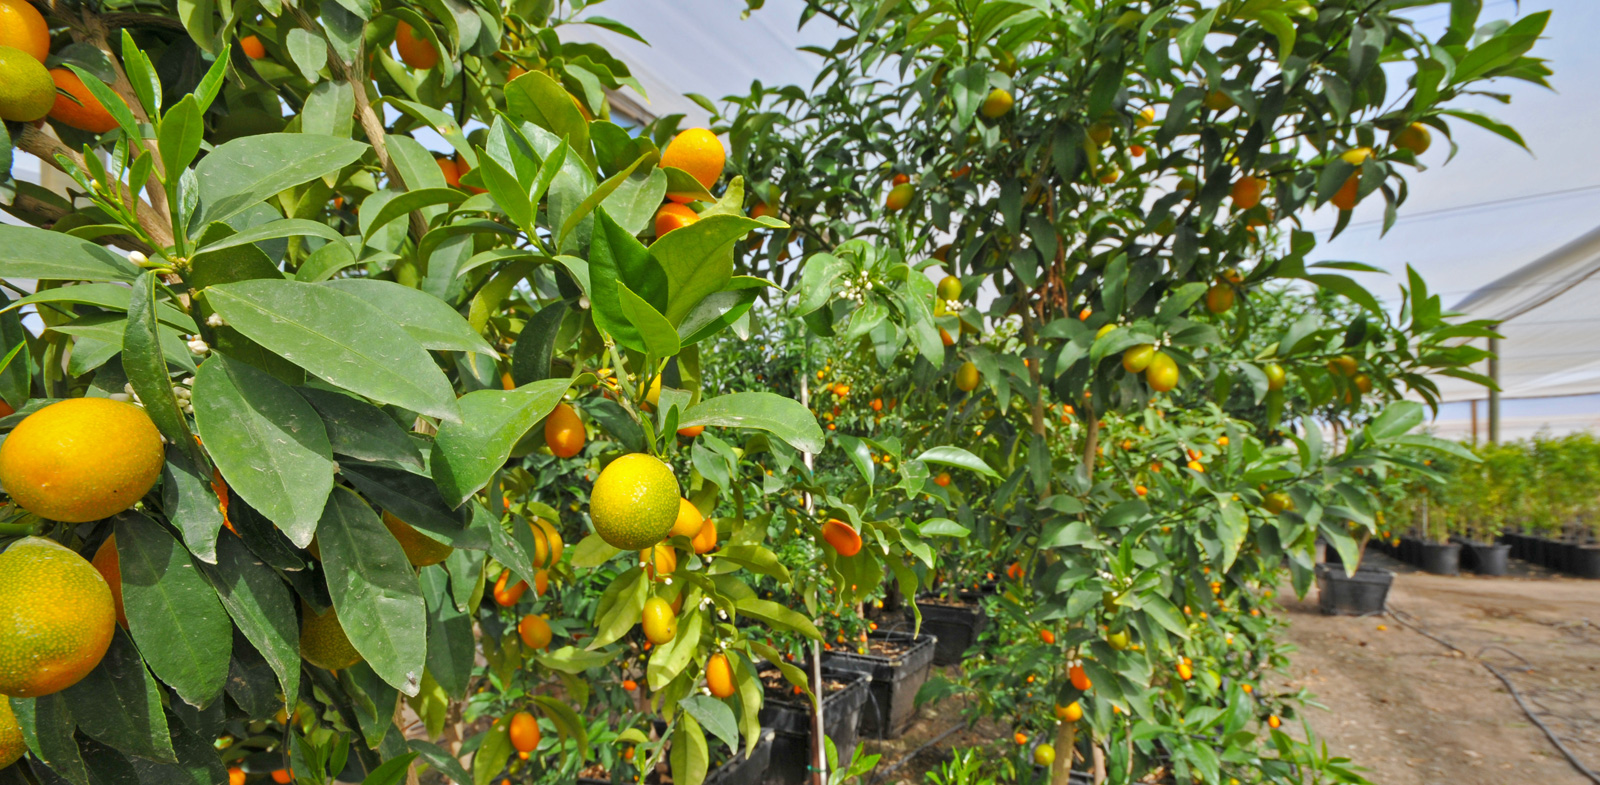 Whole Citrus Nursery